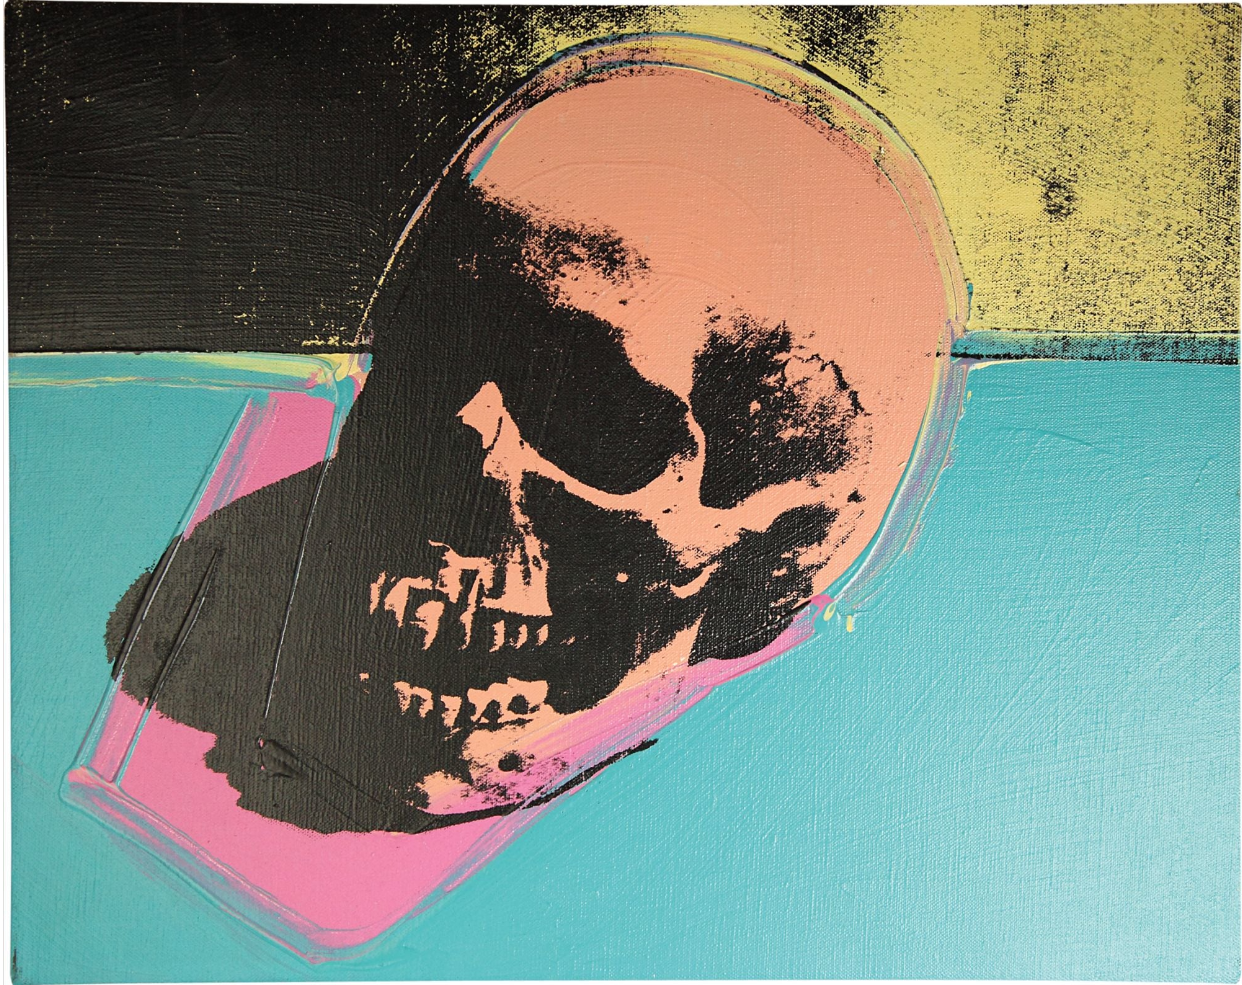 Screenprint of a skull by Andy Warhol, 1976